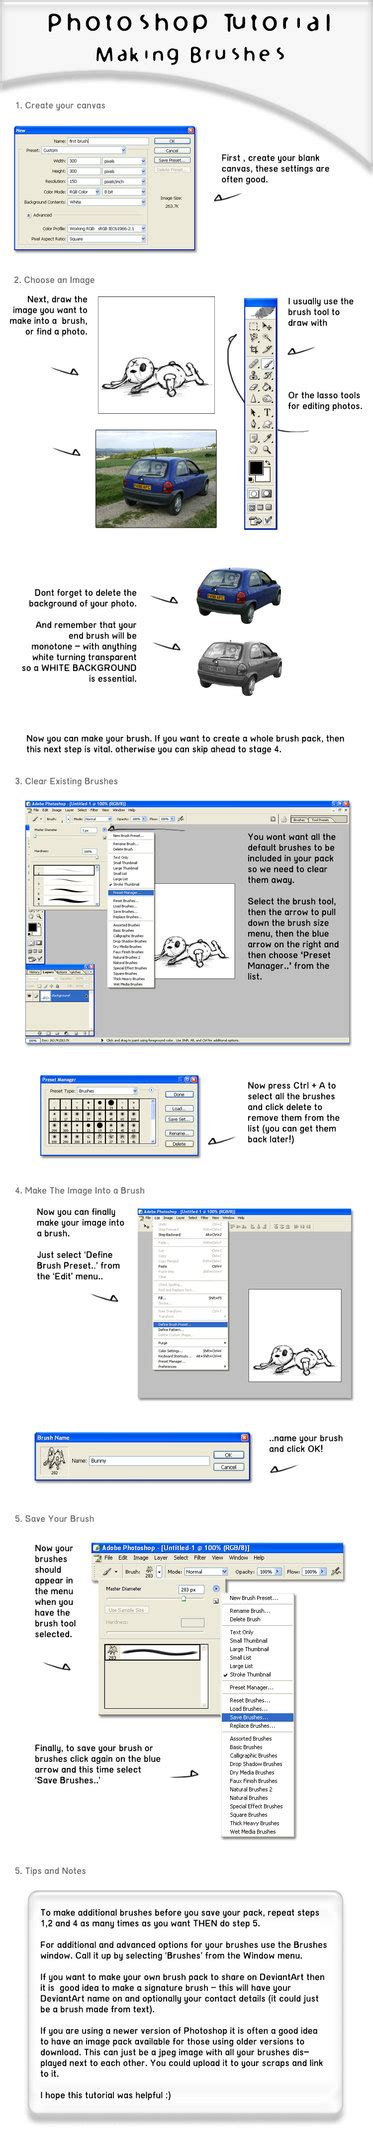 tutorial photoshop net tutorial photoshop brushes by invisiblesnow on deviantart